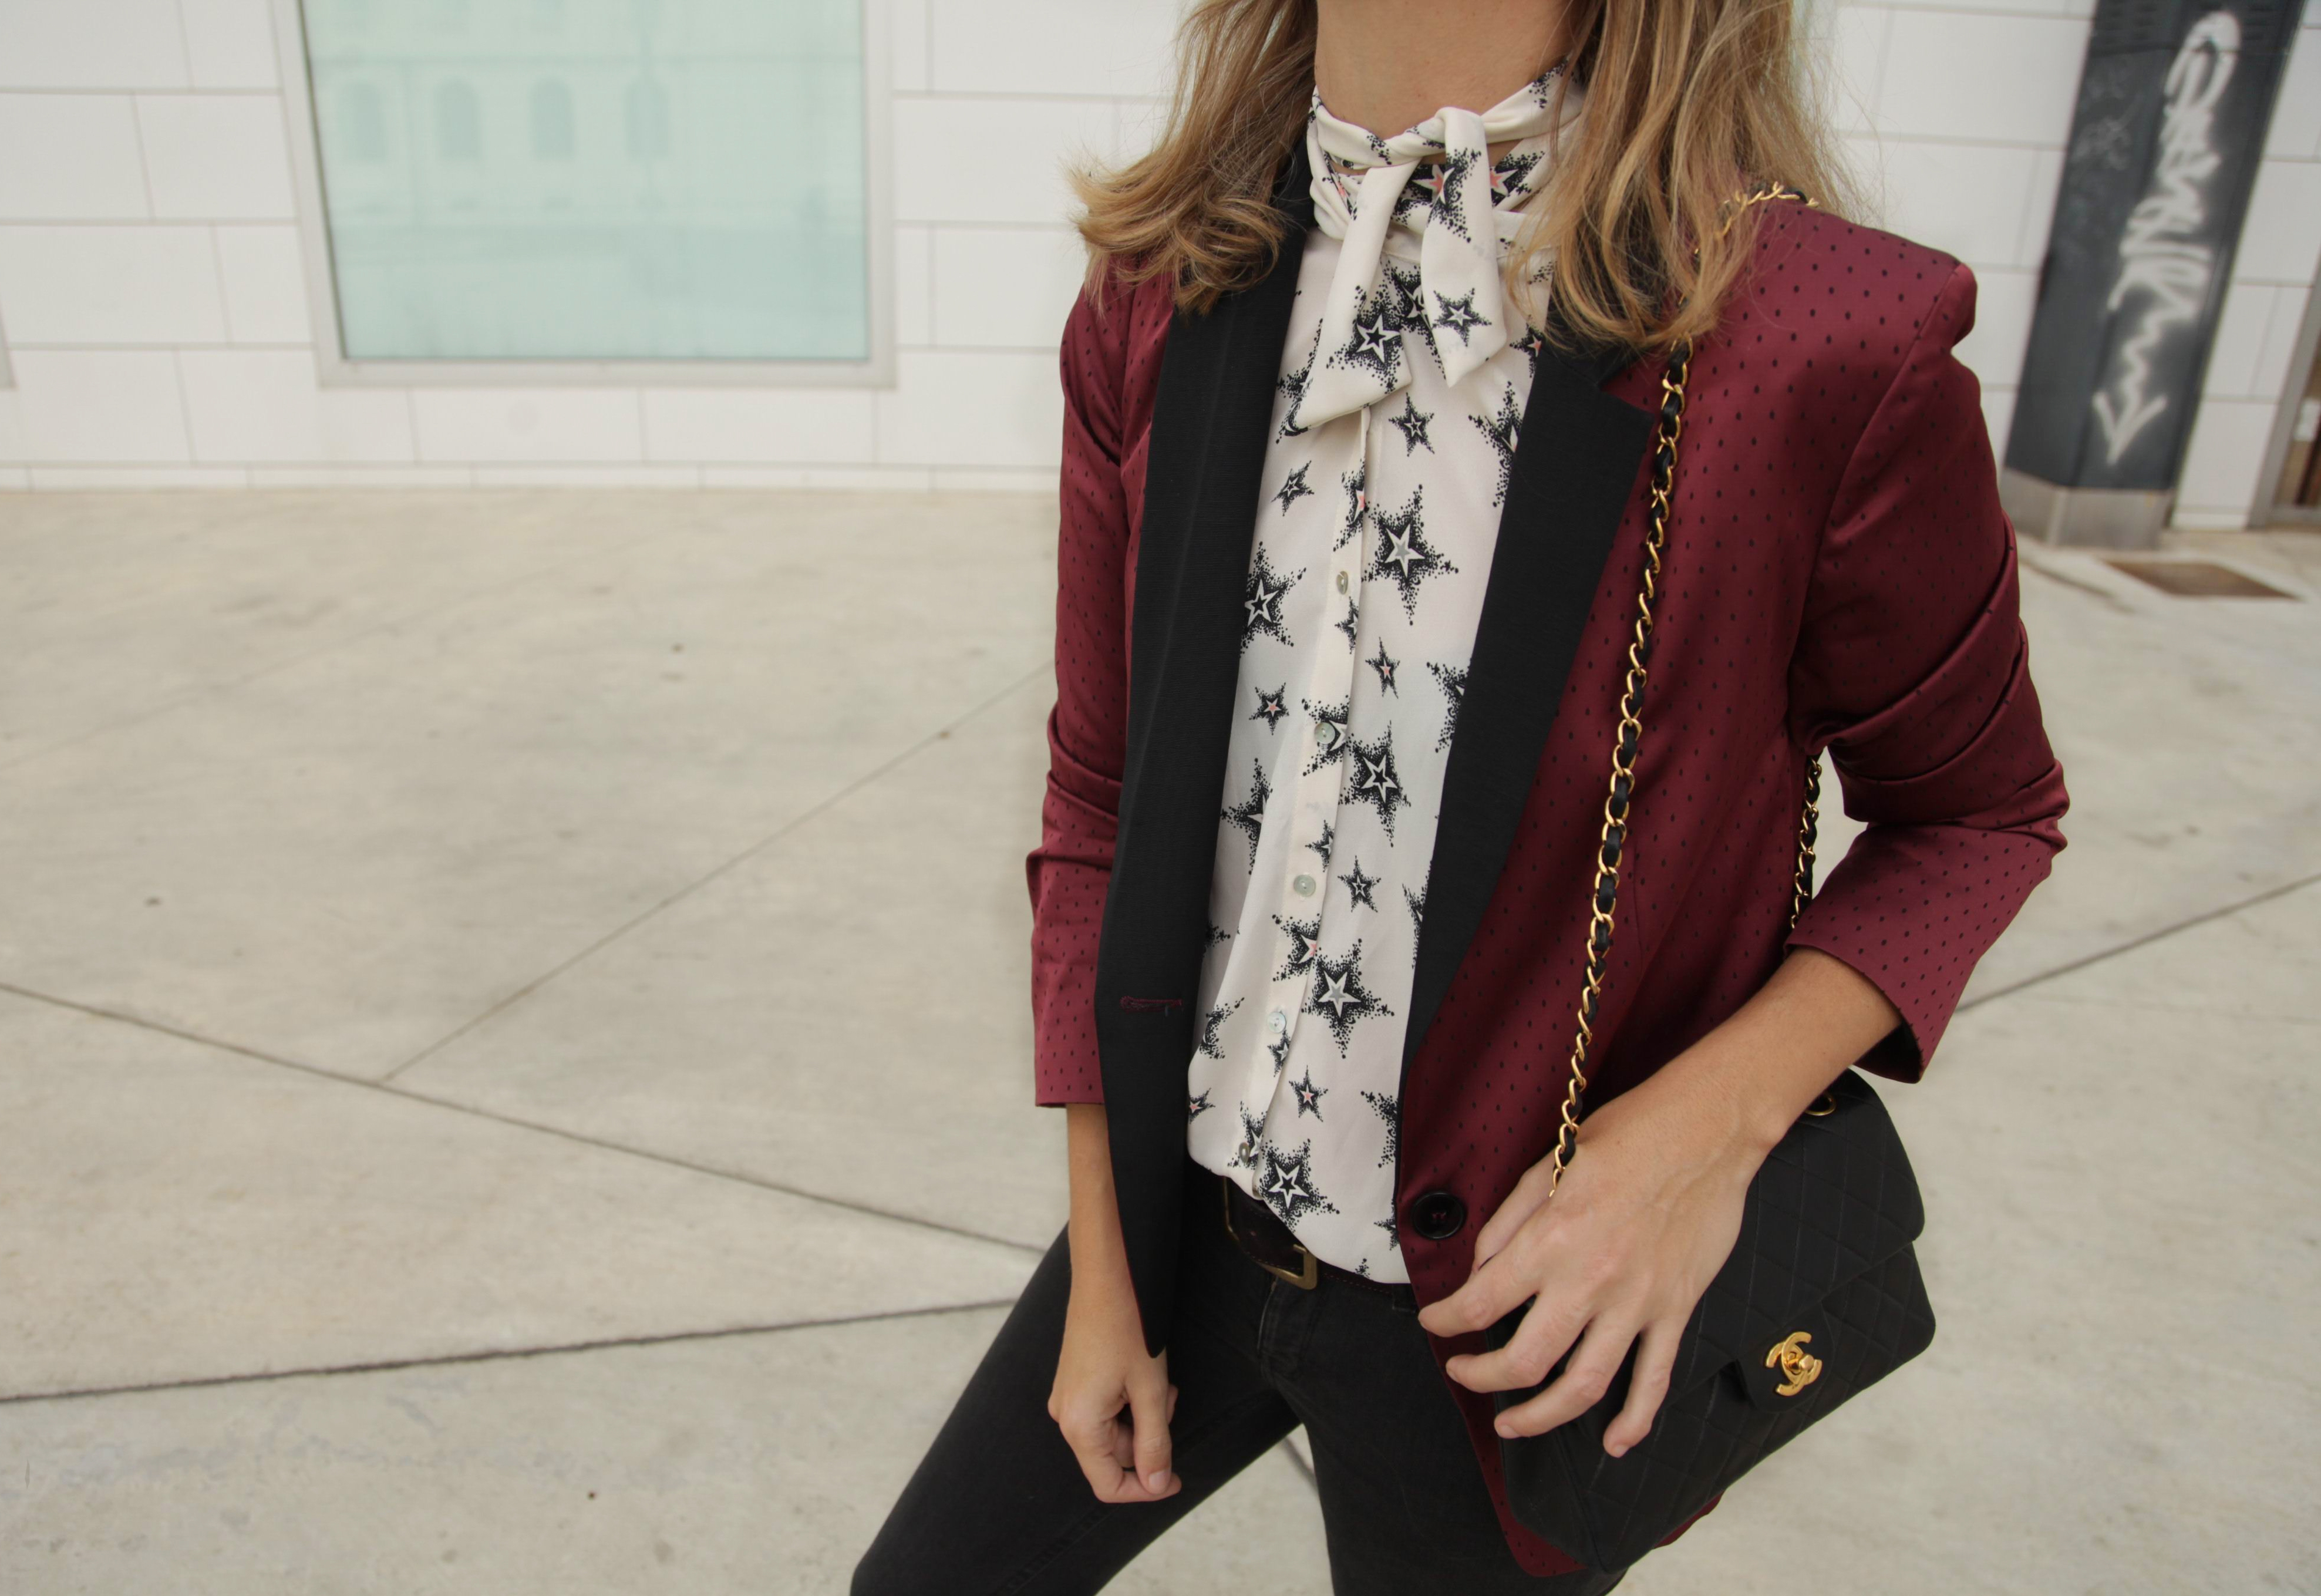 TRACK YOUR STAR-64927-mydailystyle